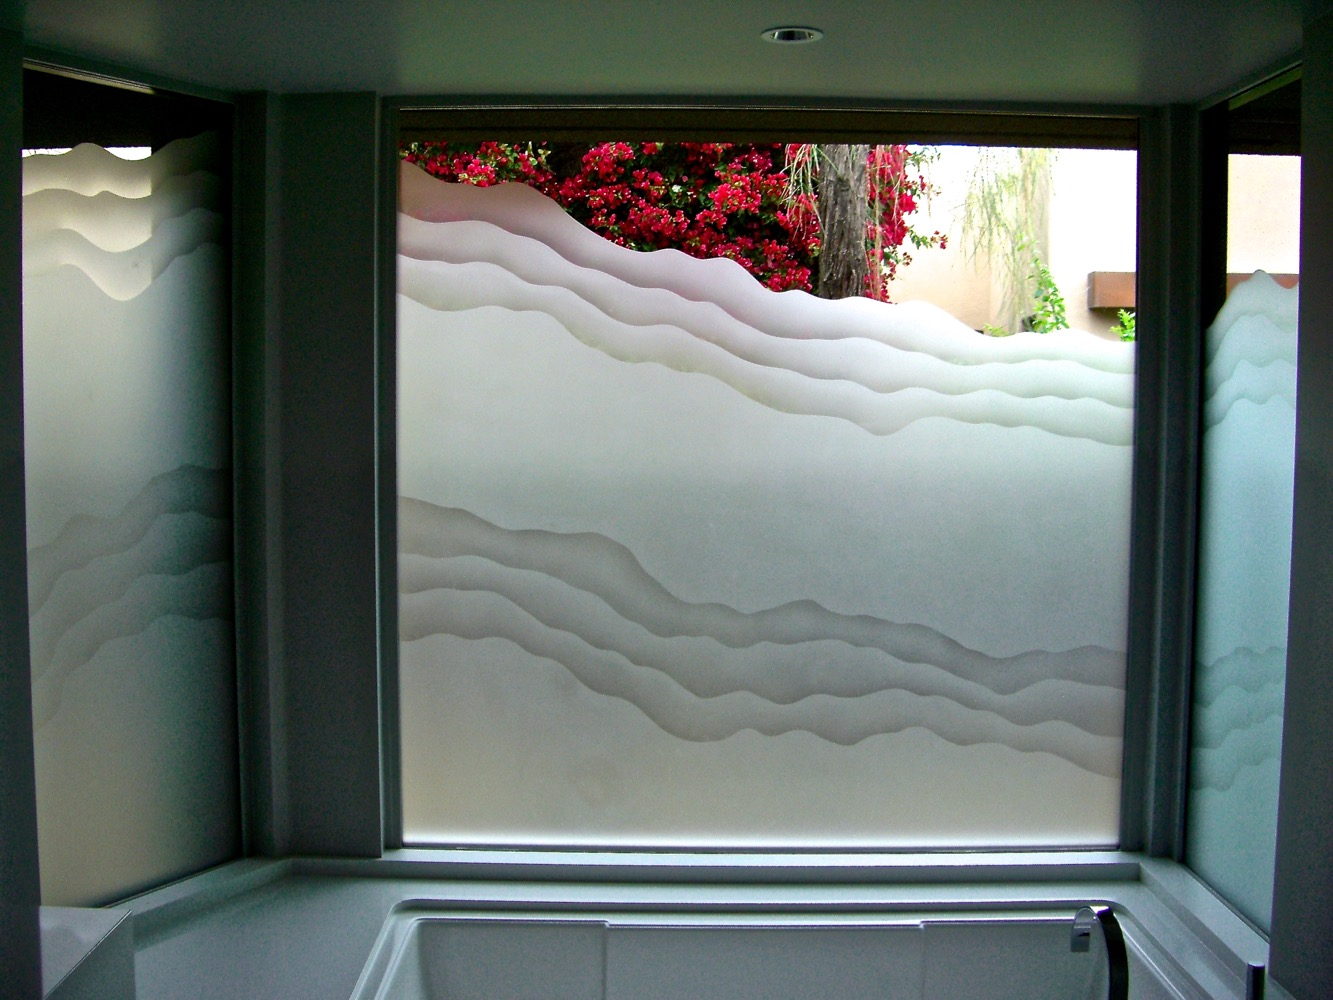 Rugged Waves 2d L Etched Glass Windows L Sans Soucie